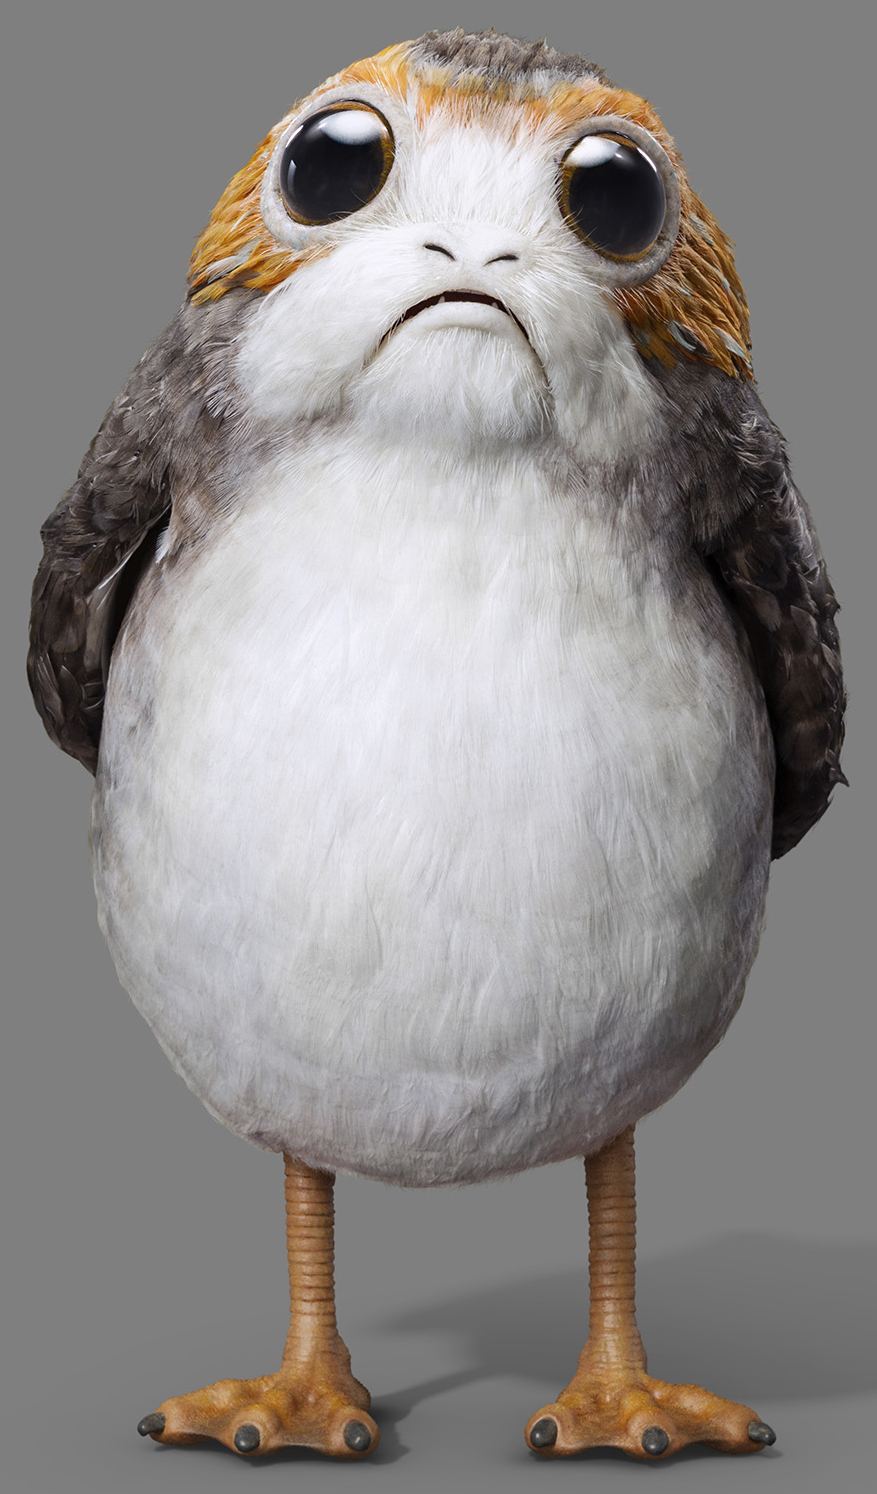 Porg star wars wiki fandom powered by wikia - Personnage de starwars ...